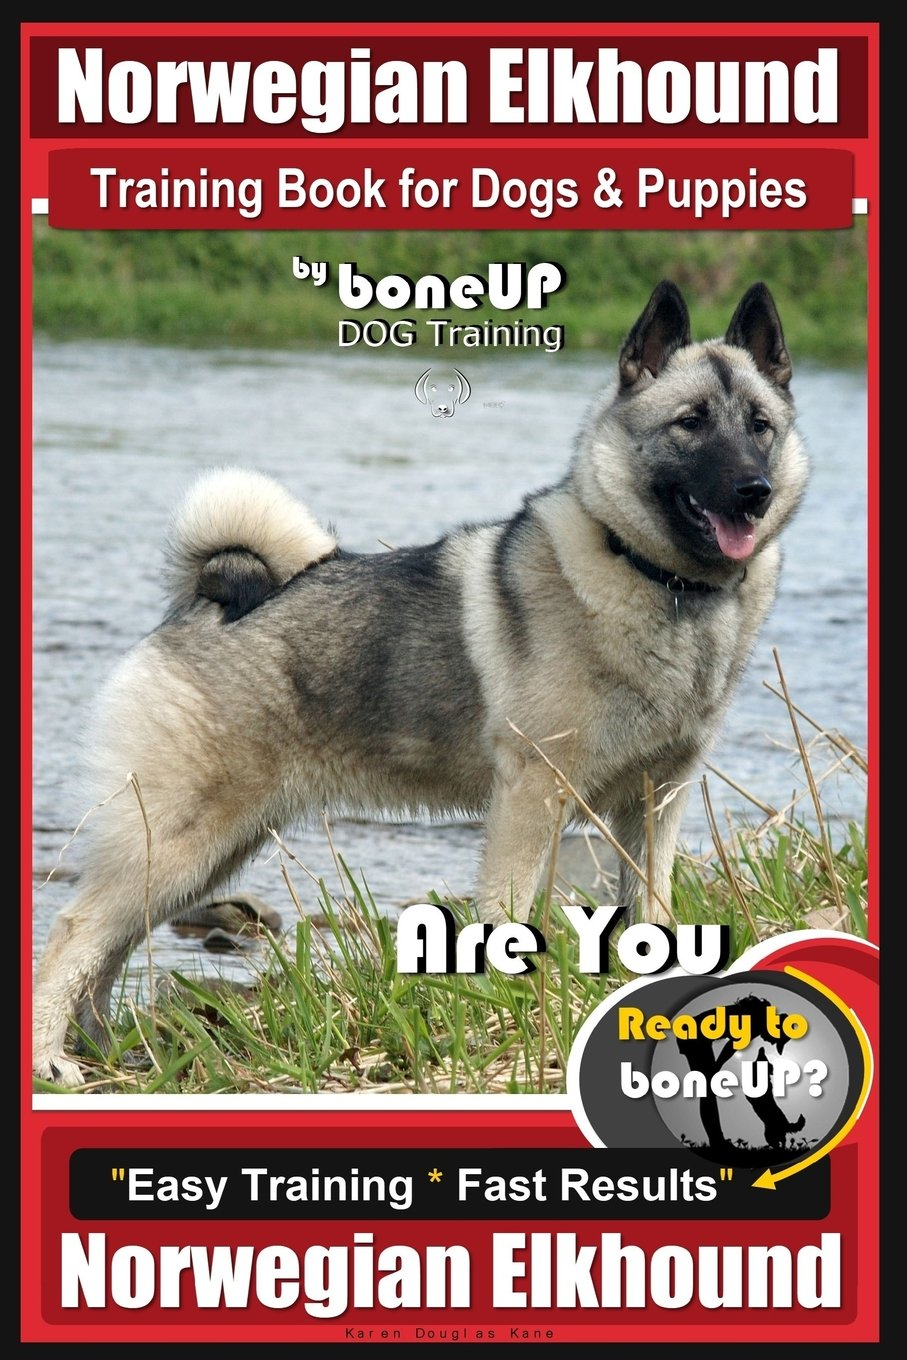 Download Norwegian Elkhound Training Book for Dogs and Puppies by Bone Up Dog Training: Are You Ready to Bone Up? Easy Training * Fast Results Norwegian Elkhound pdf